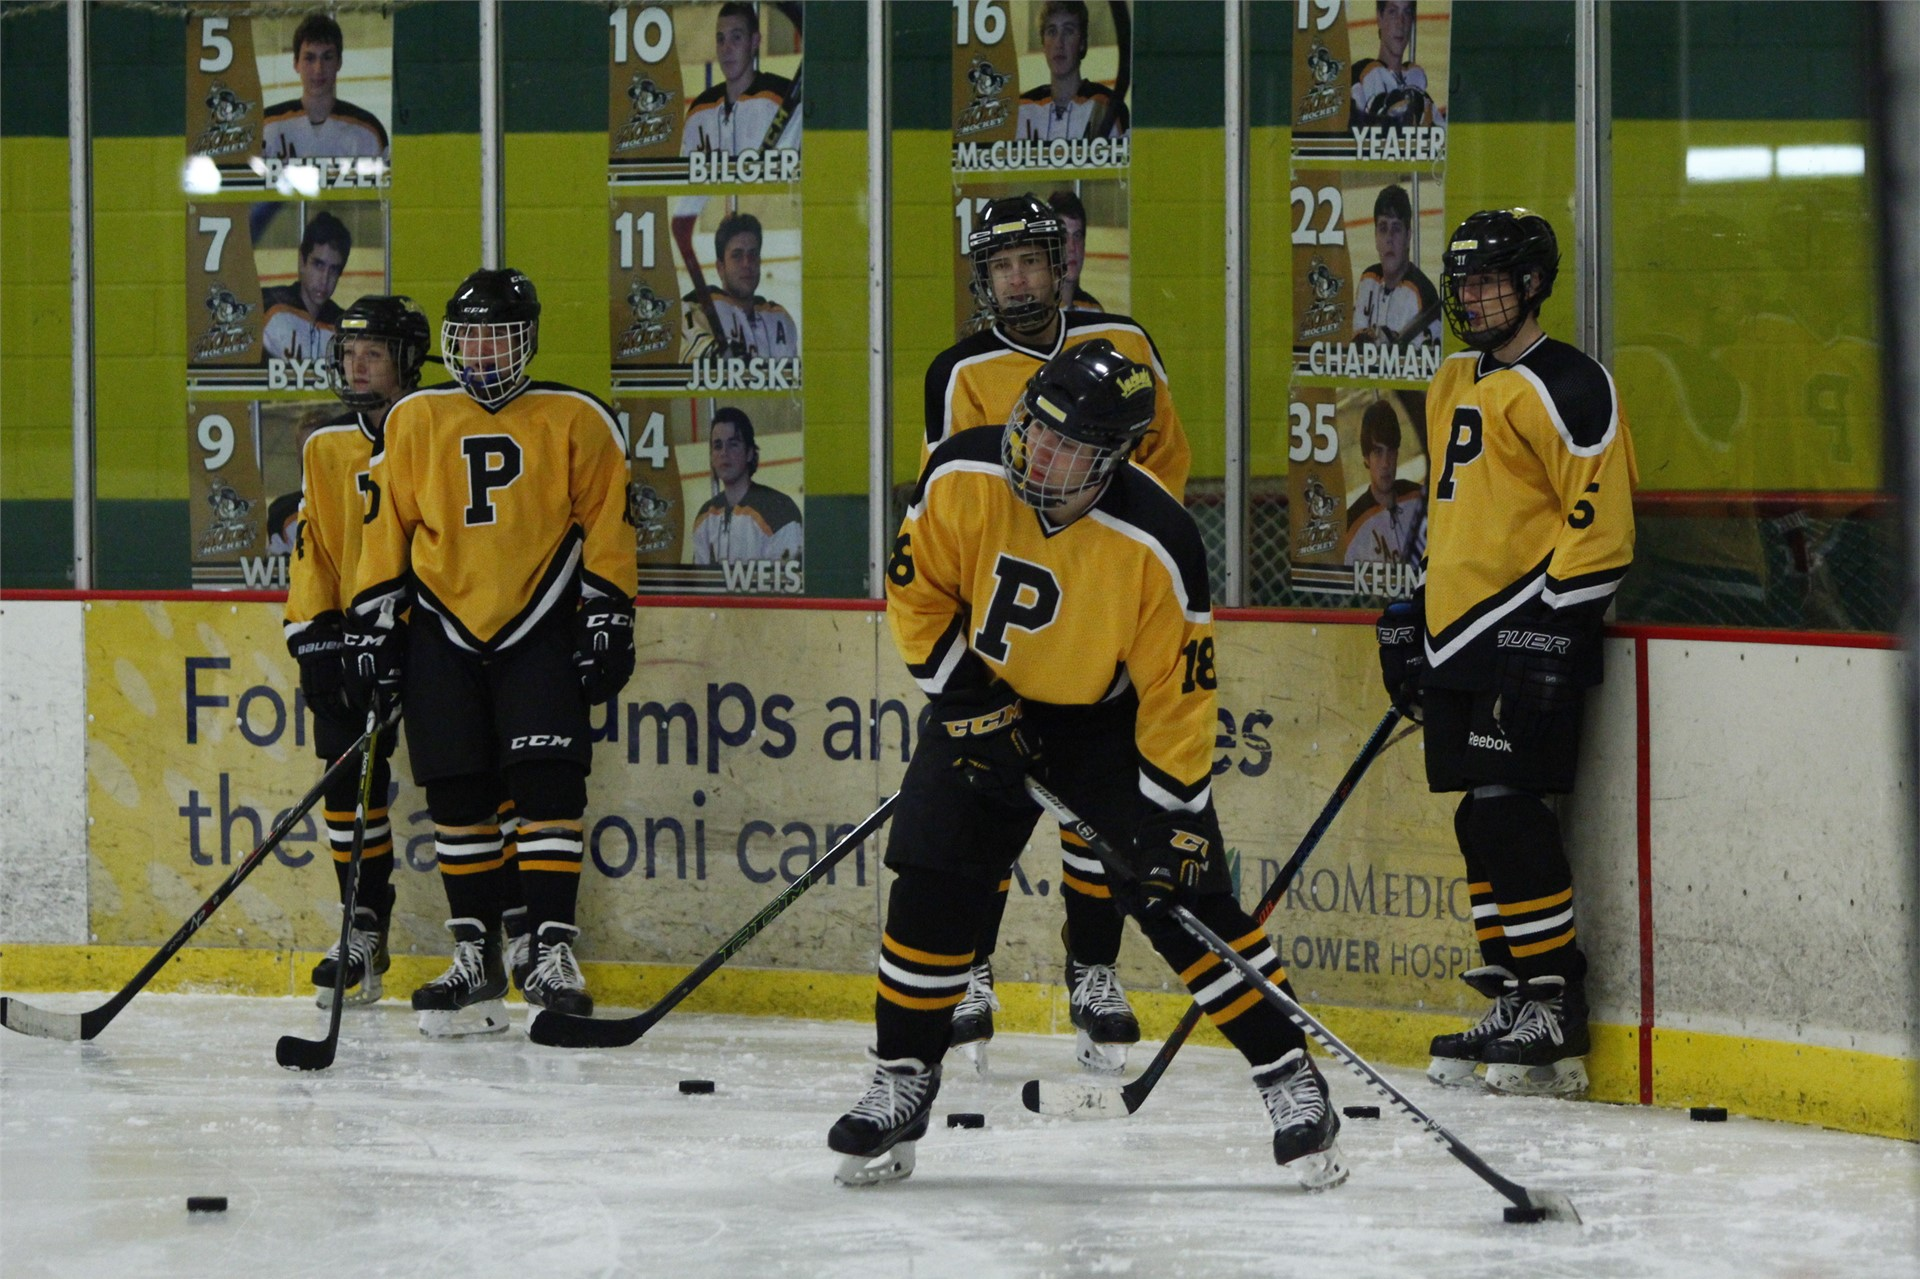 PHS student athletes warming up before a hockey game